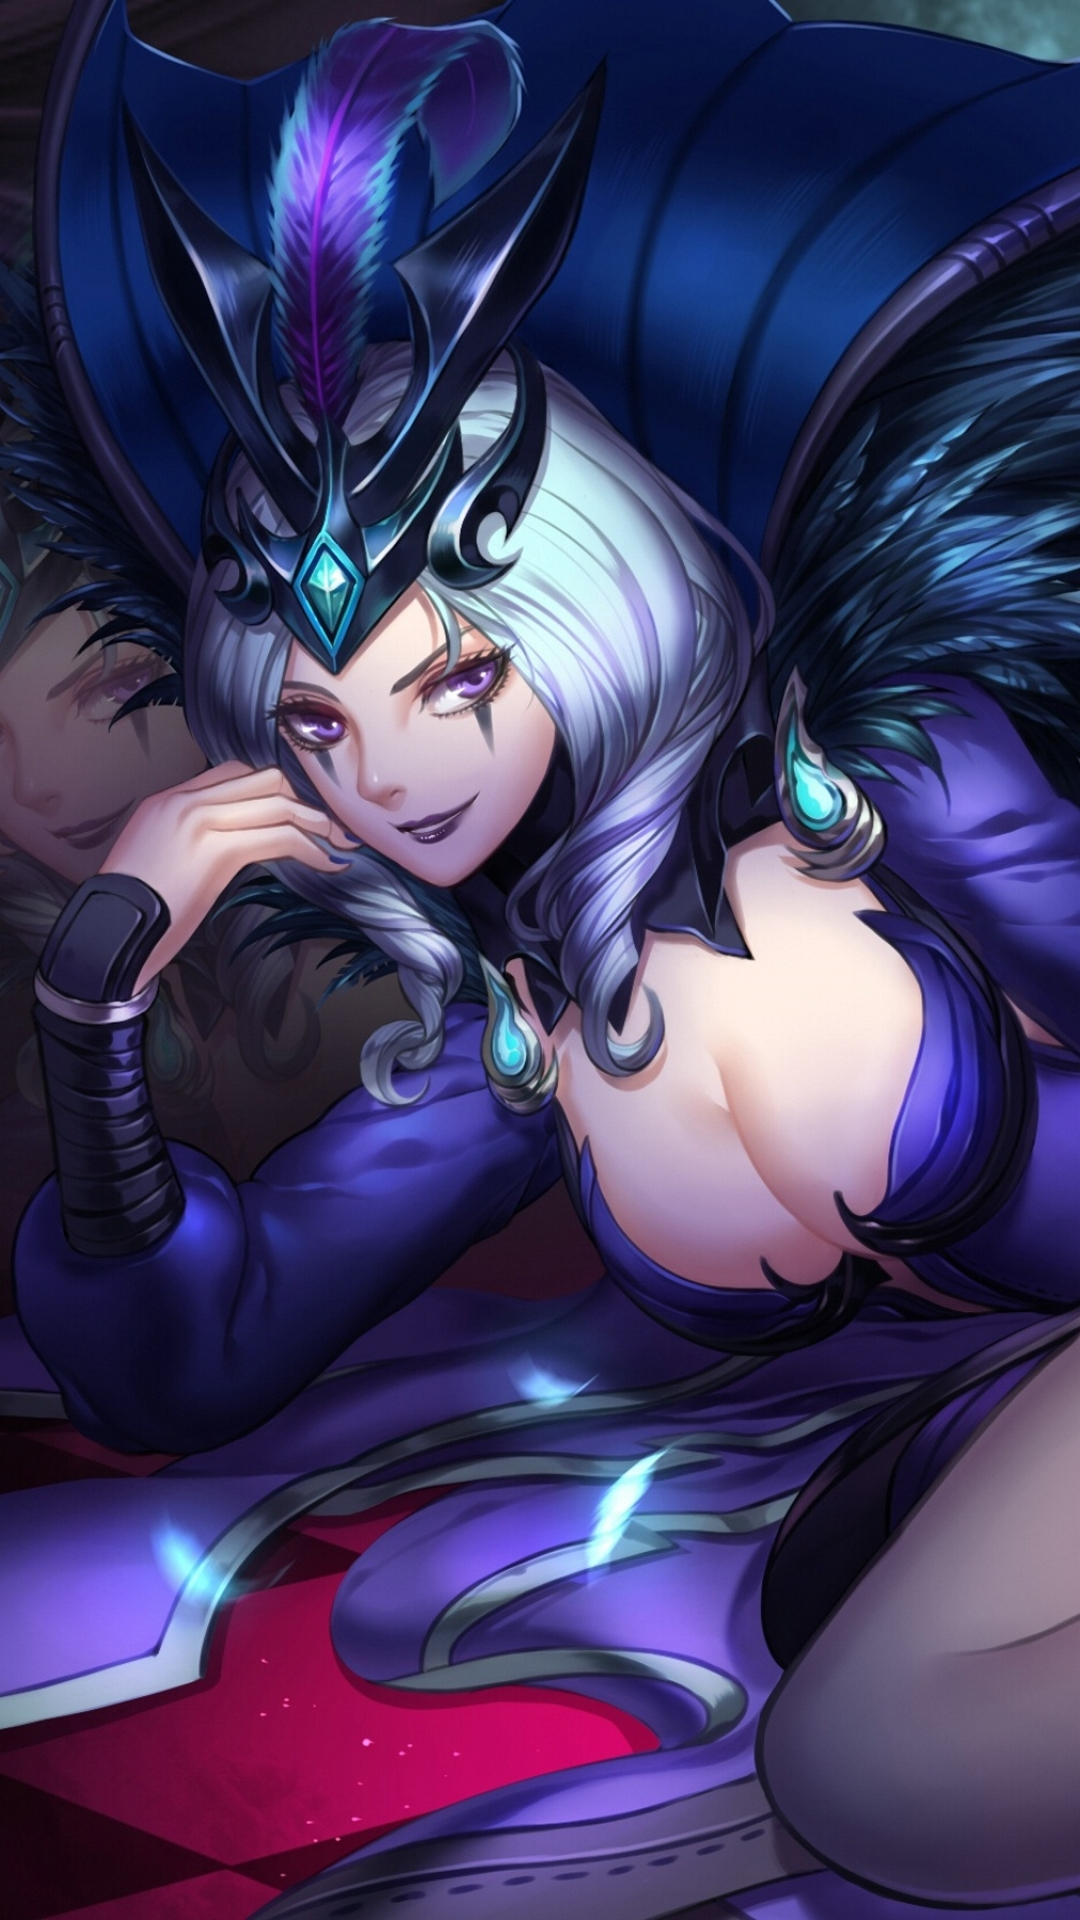 Love Quotes Hd Wallpapers Free Download Download League Of Legends Mobile Wallpaper Gallery